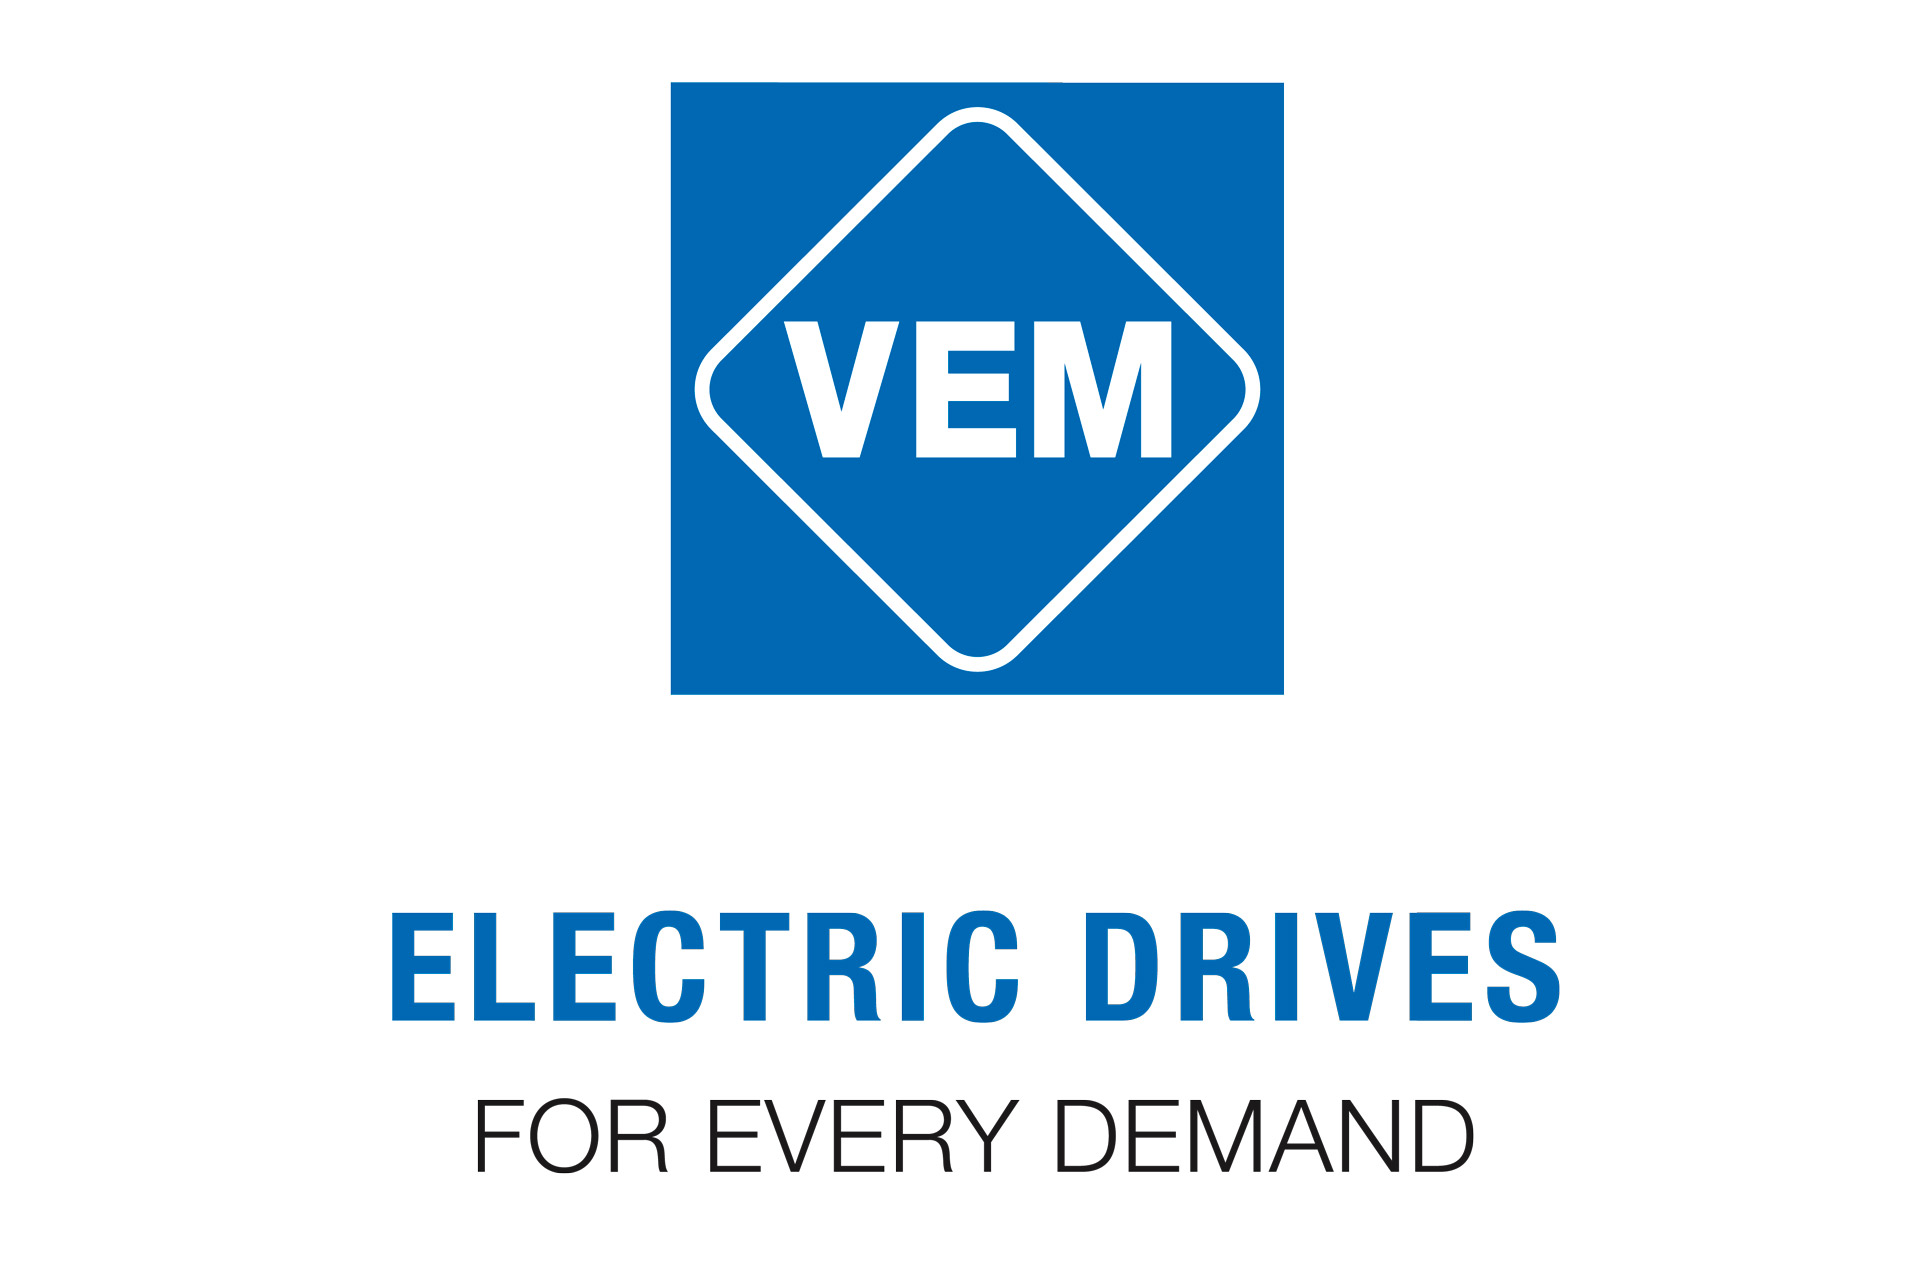 VEM Electric Drives for Every Demand